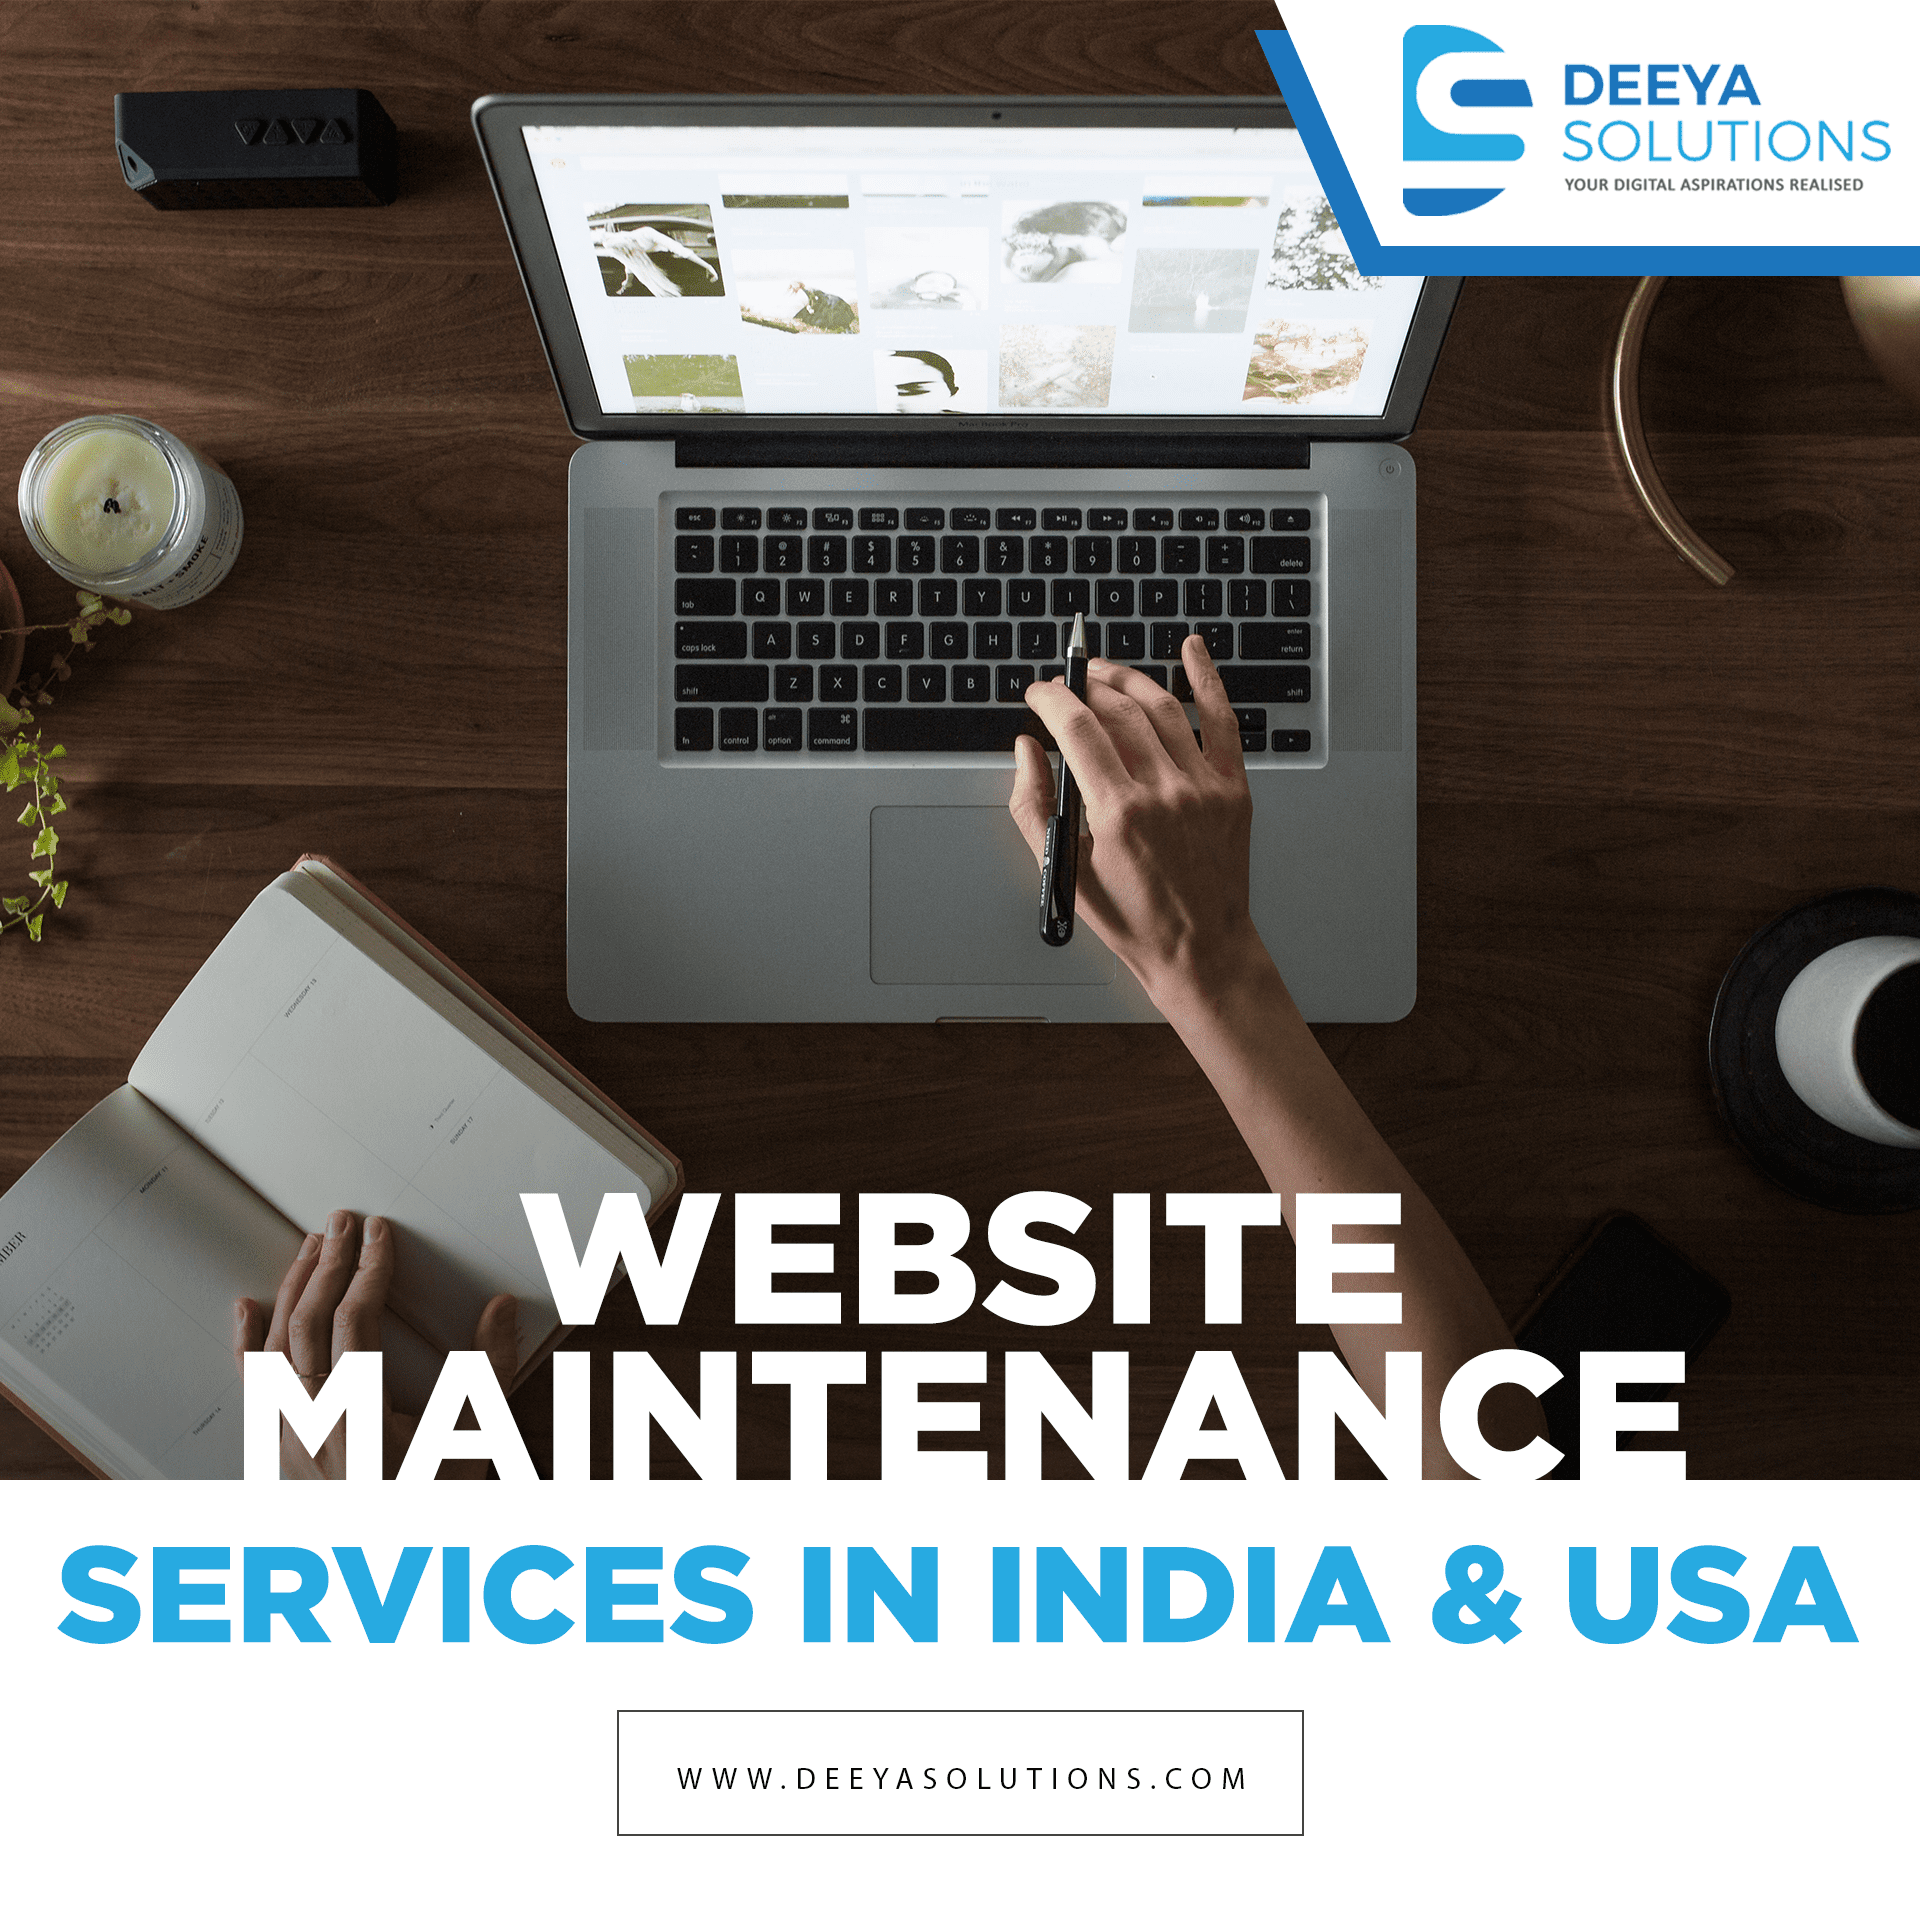 Website Maintenance Services in India & USA